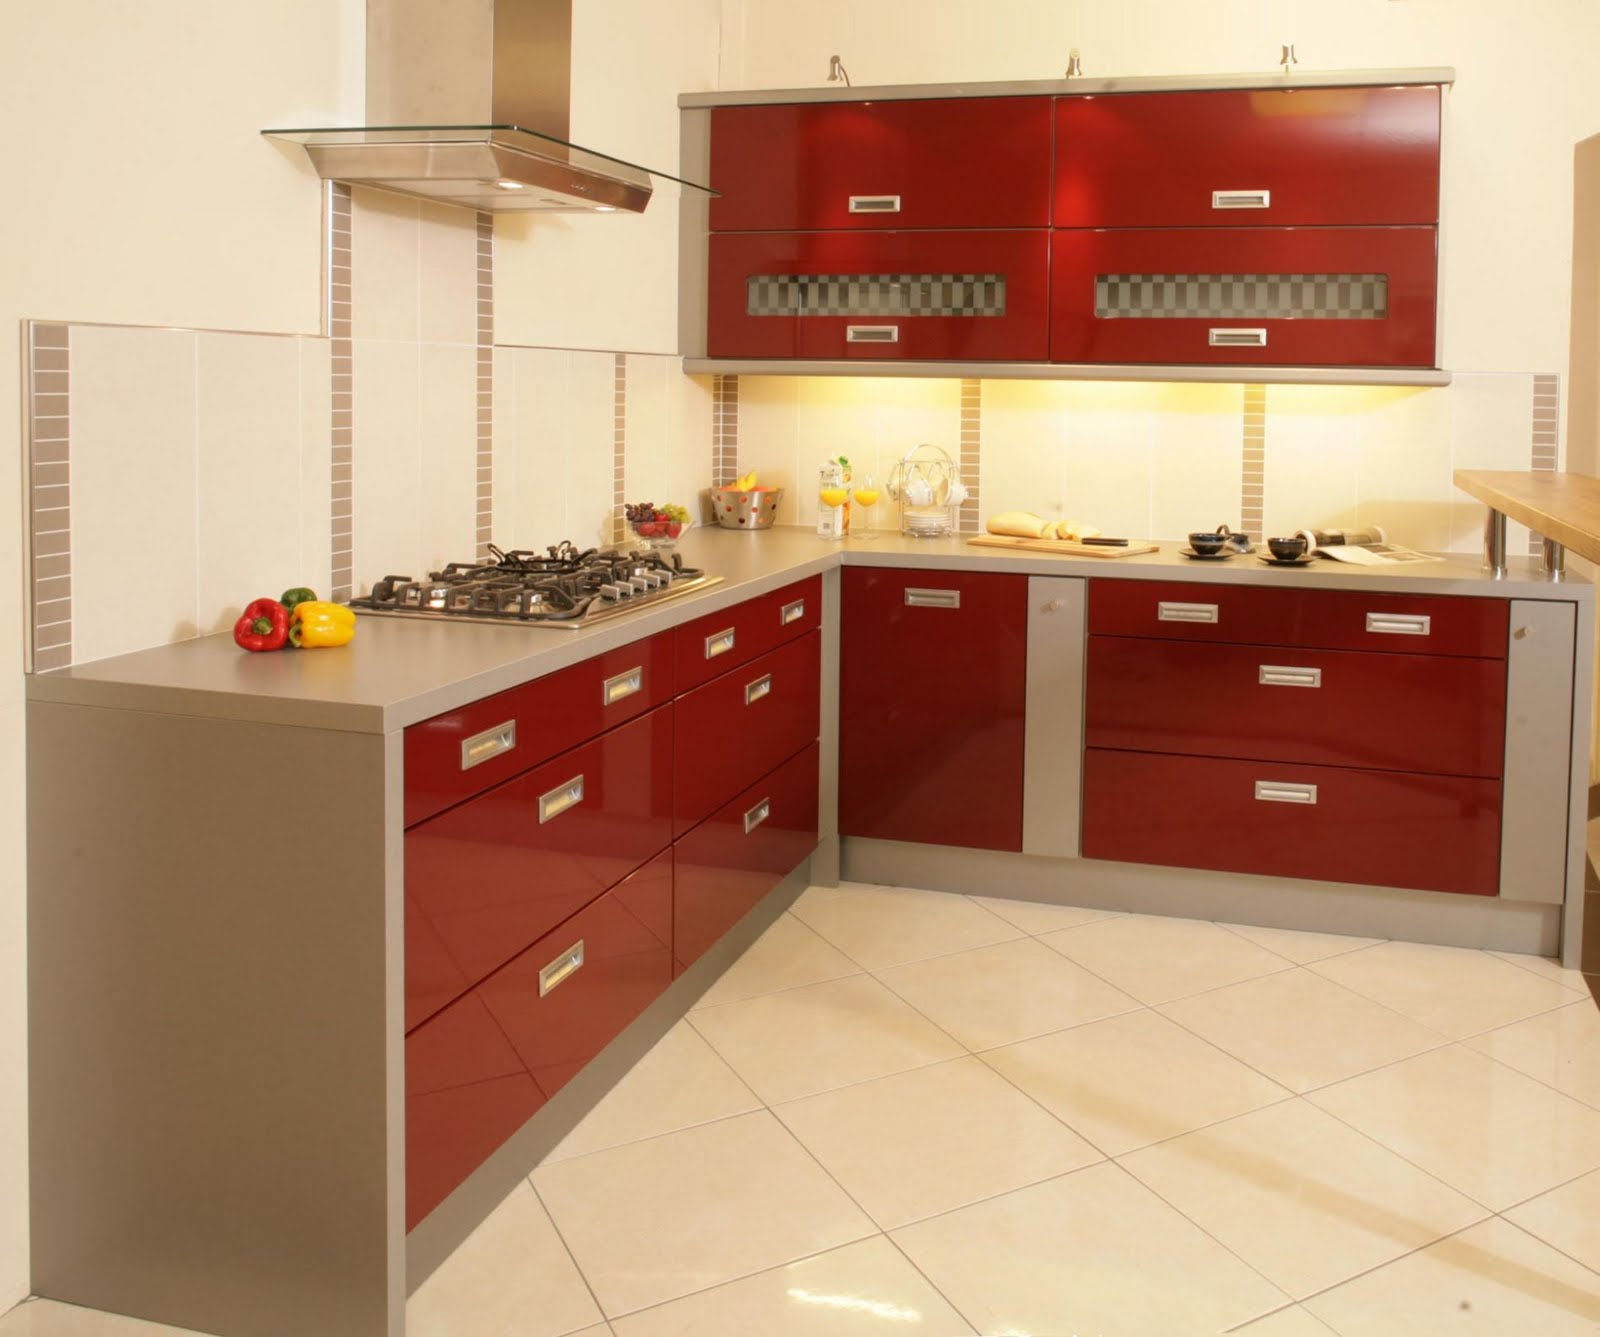 Grand Kitchen For Small Apartment Using Red L Shape Cabinet Design